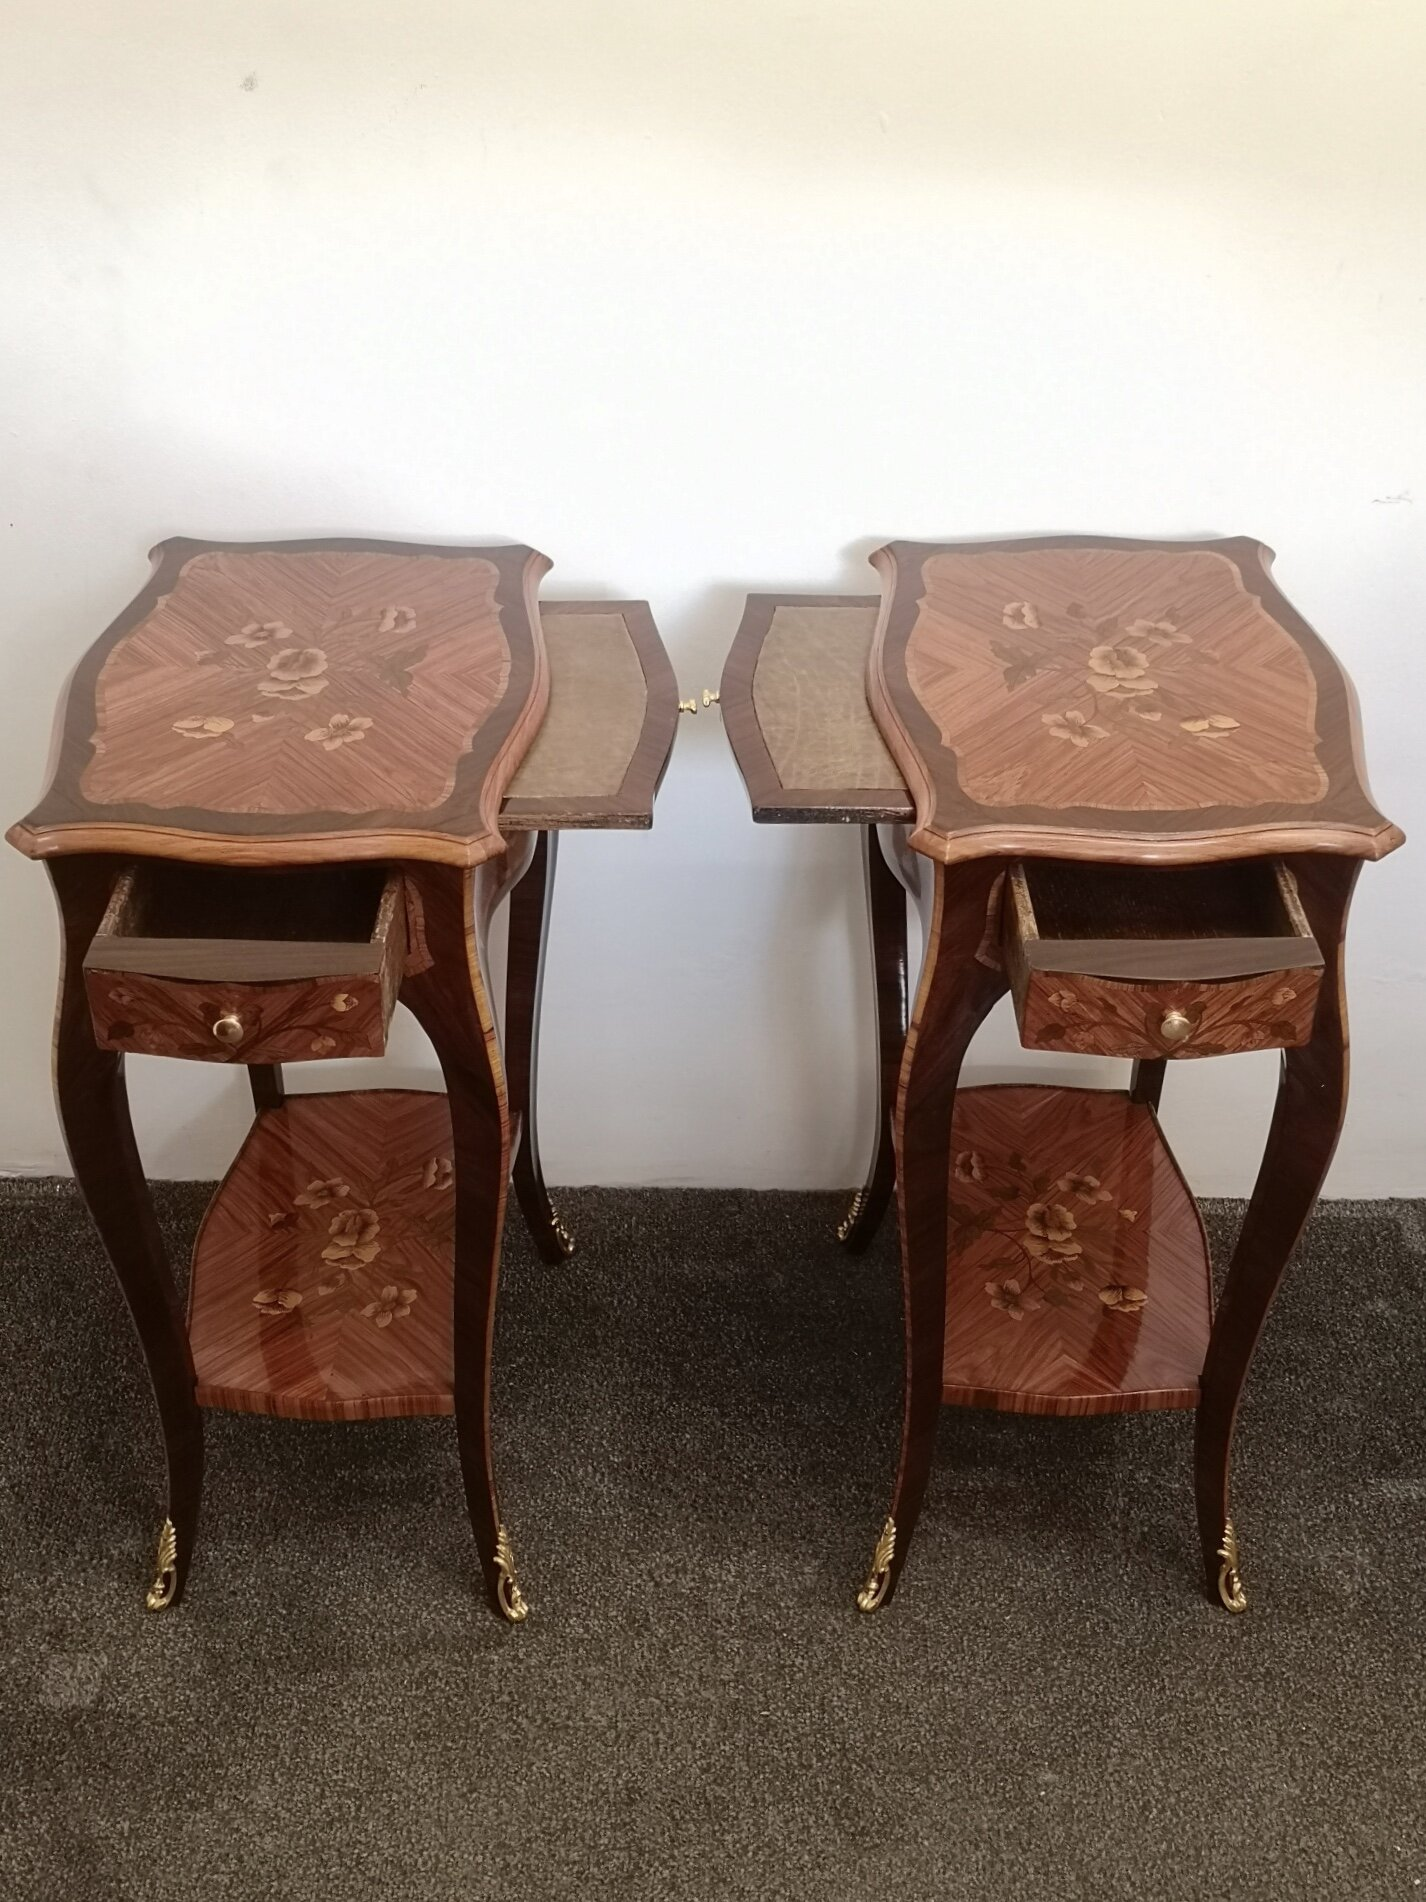 Pair Of Early 20th Century French Kingwood Marquetry Side Tables